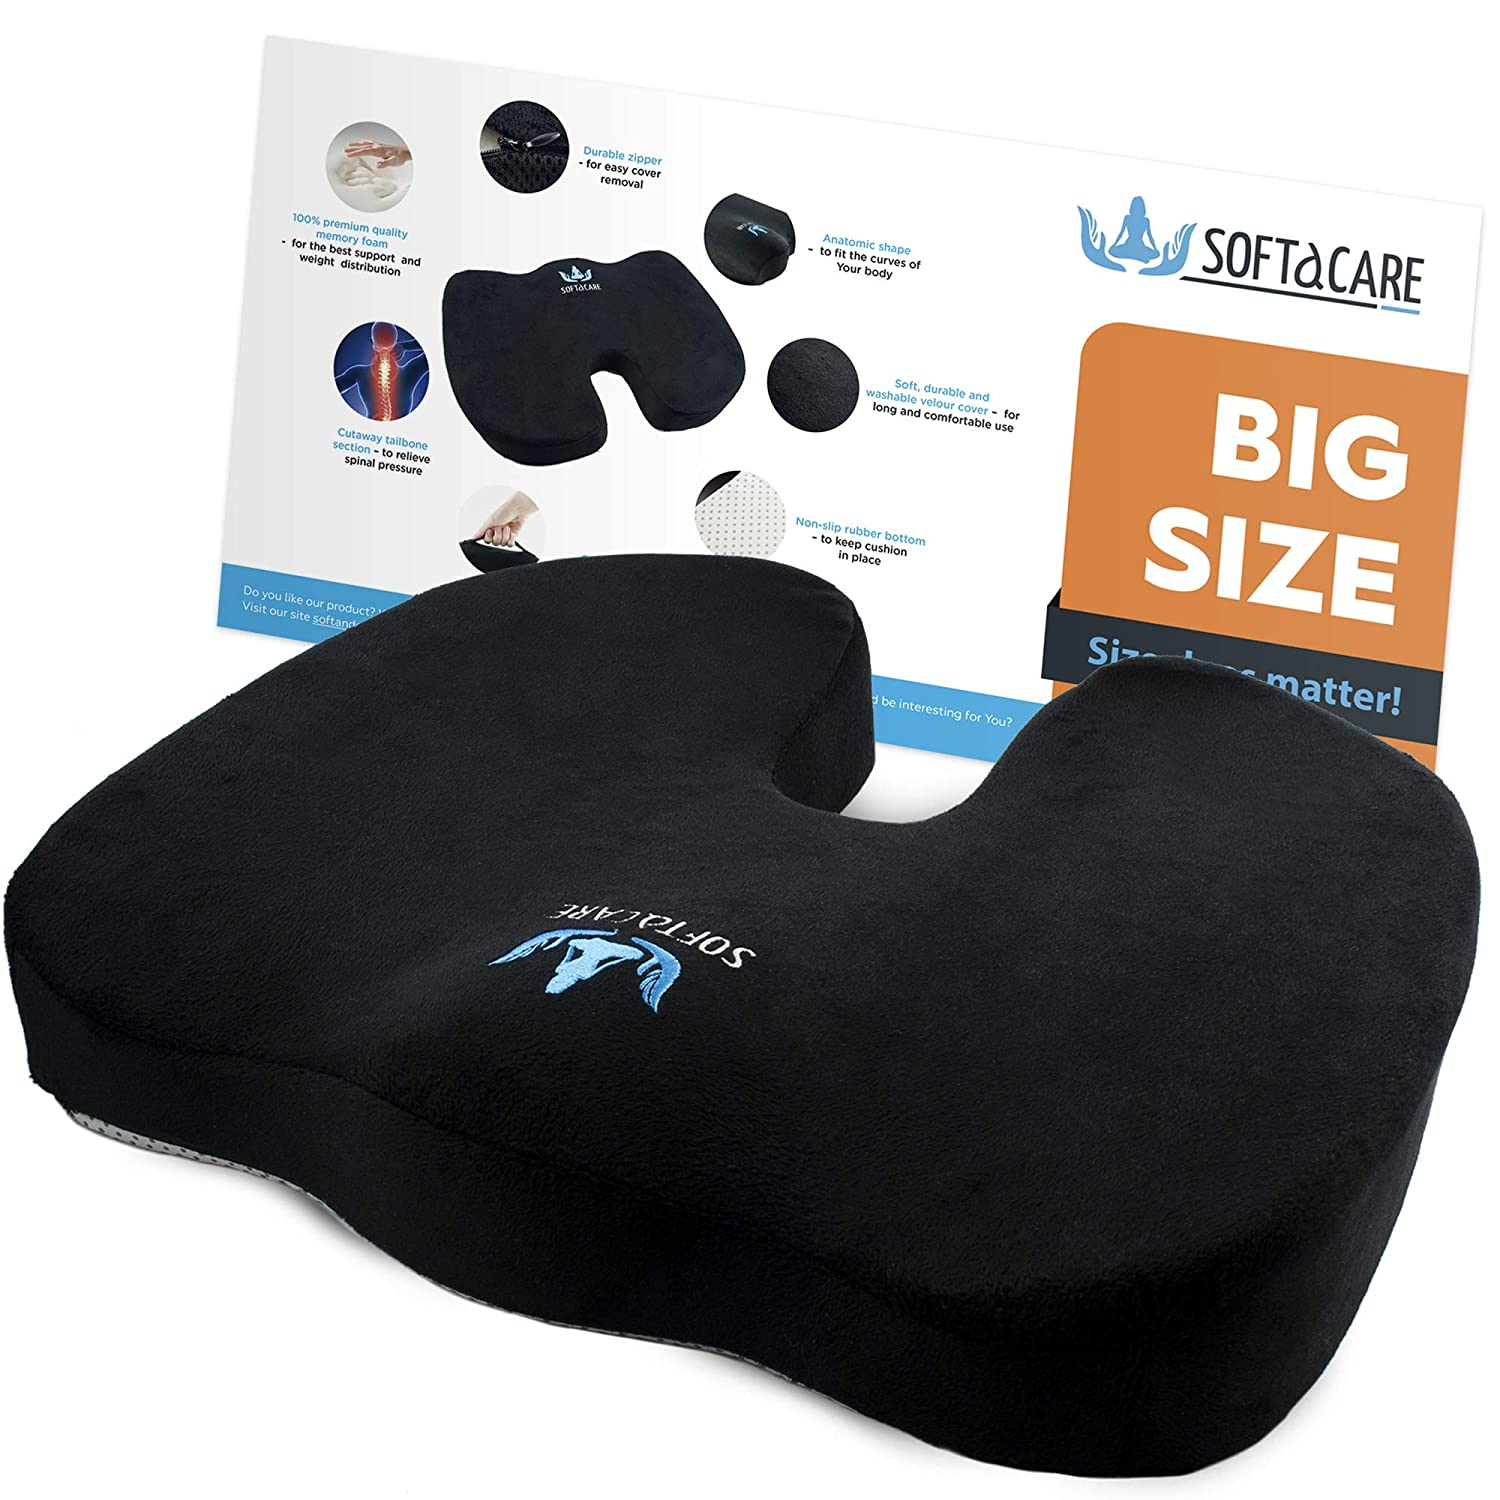 "SOFTaCARE Best Seat Cushion - Big Cushion Seat - Office Chair Cushion 18""x16""x3 1/2""- Chair Pillow Memory Foam! Ideal Car Seat Cushion-Coccyx Cushion-Relieve Your Pain Size has The Meaning (Black)"